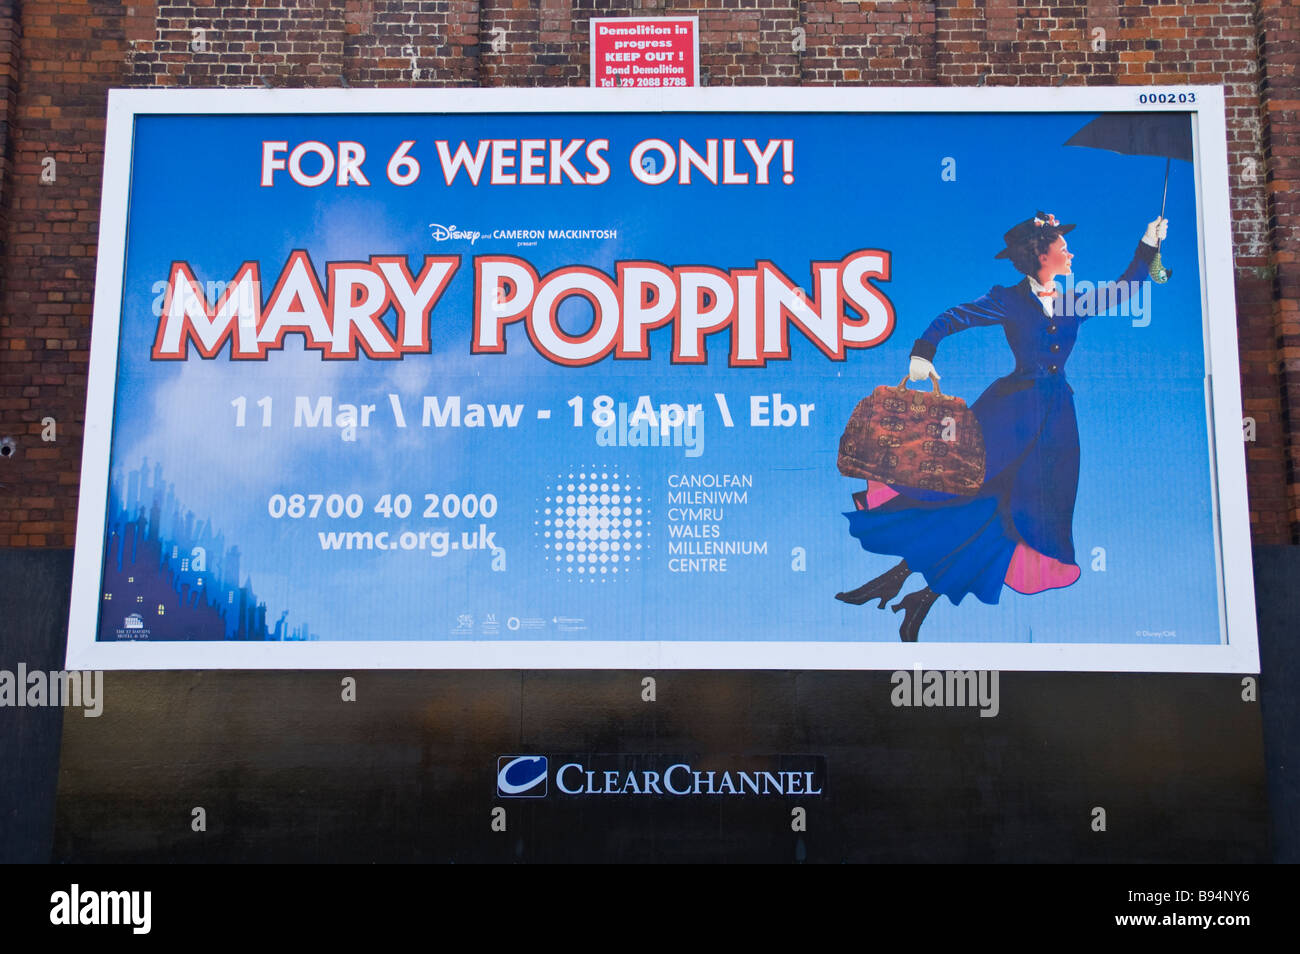 Bilingual English & Welsh advertising billboard for Mary